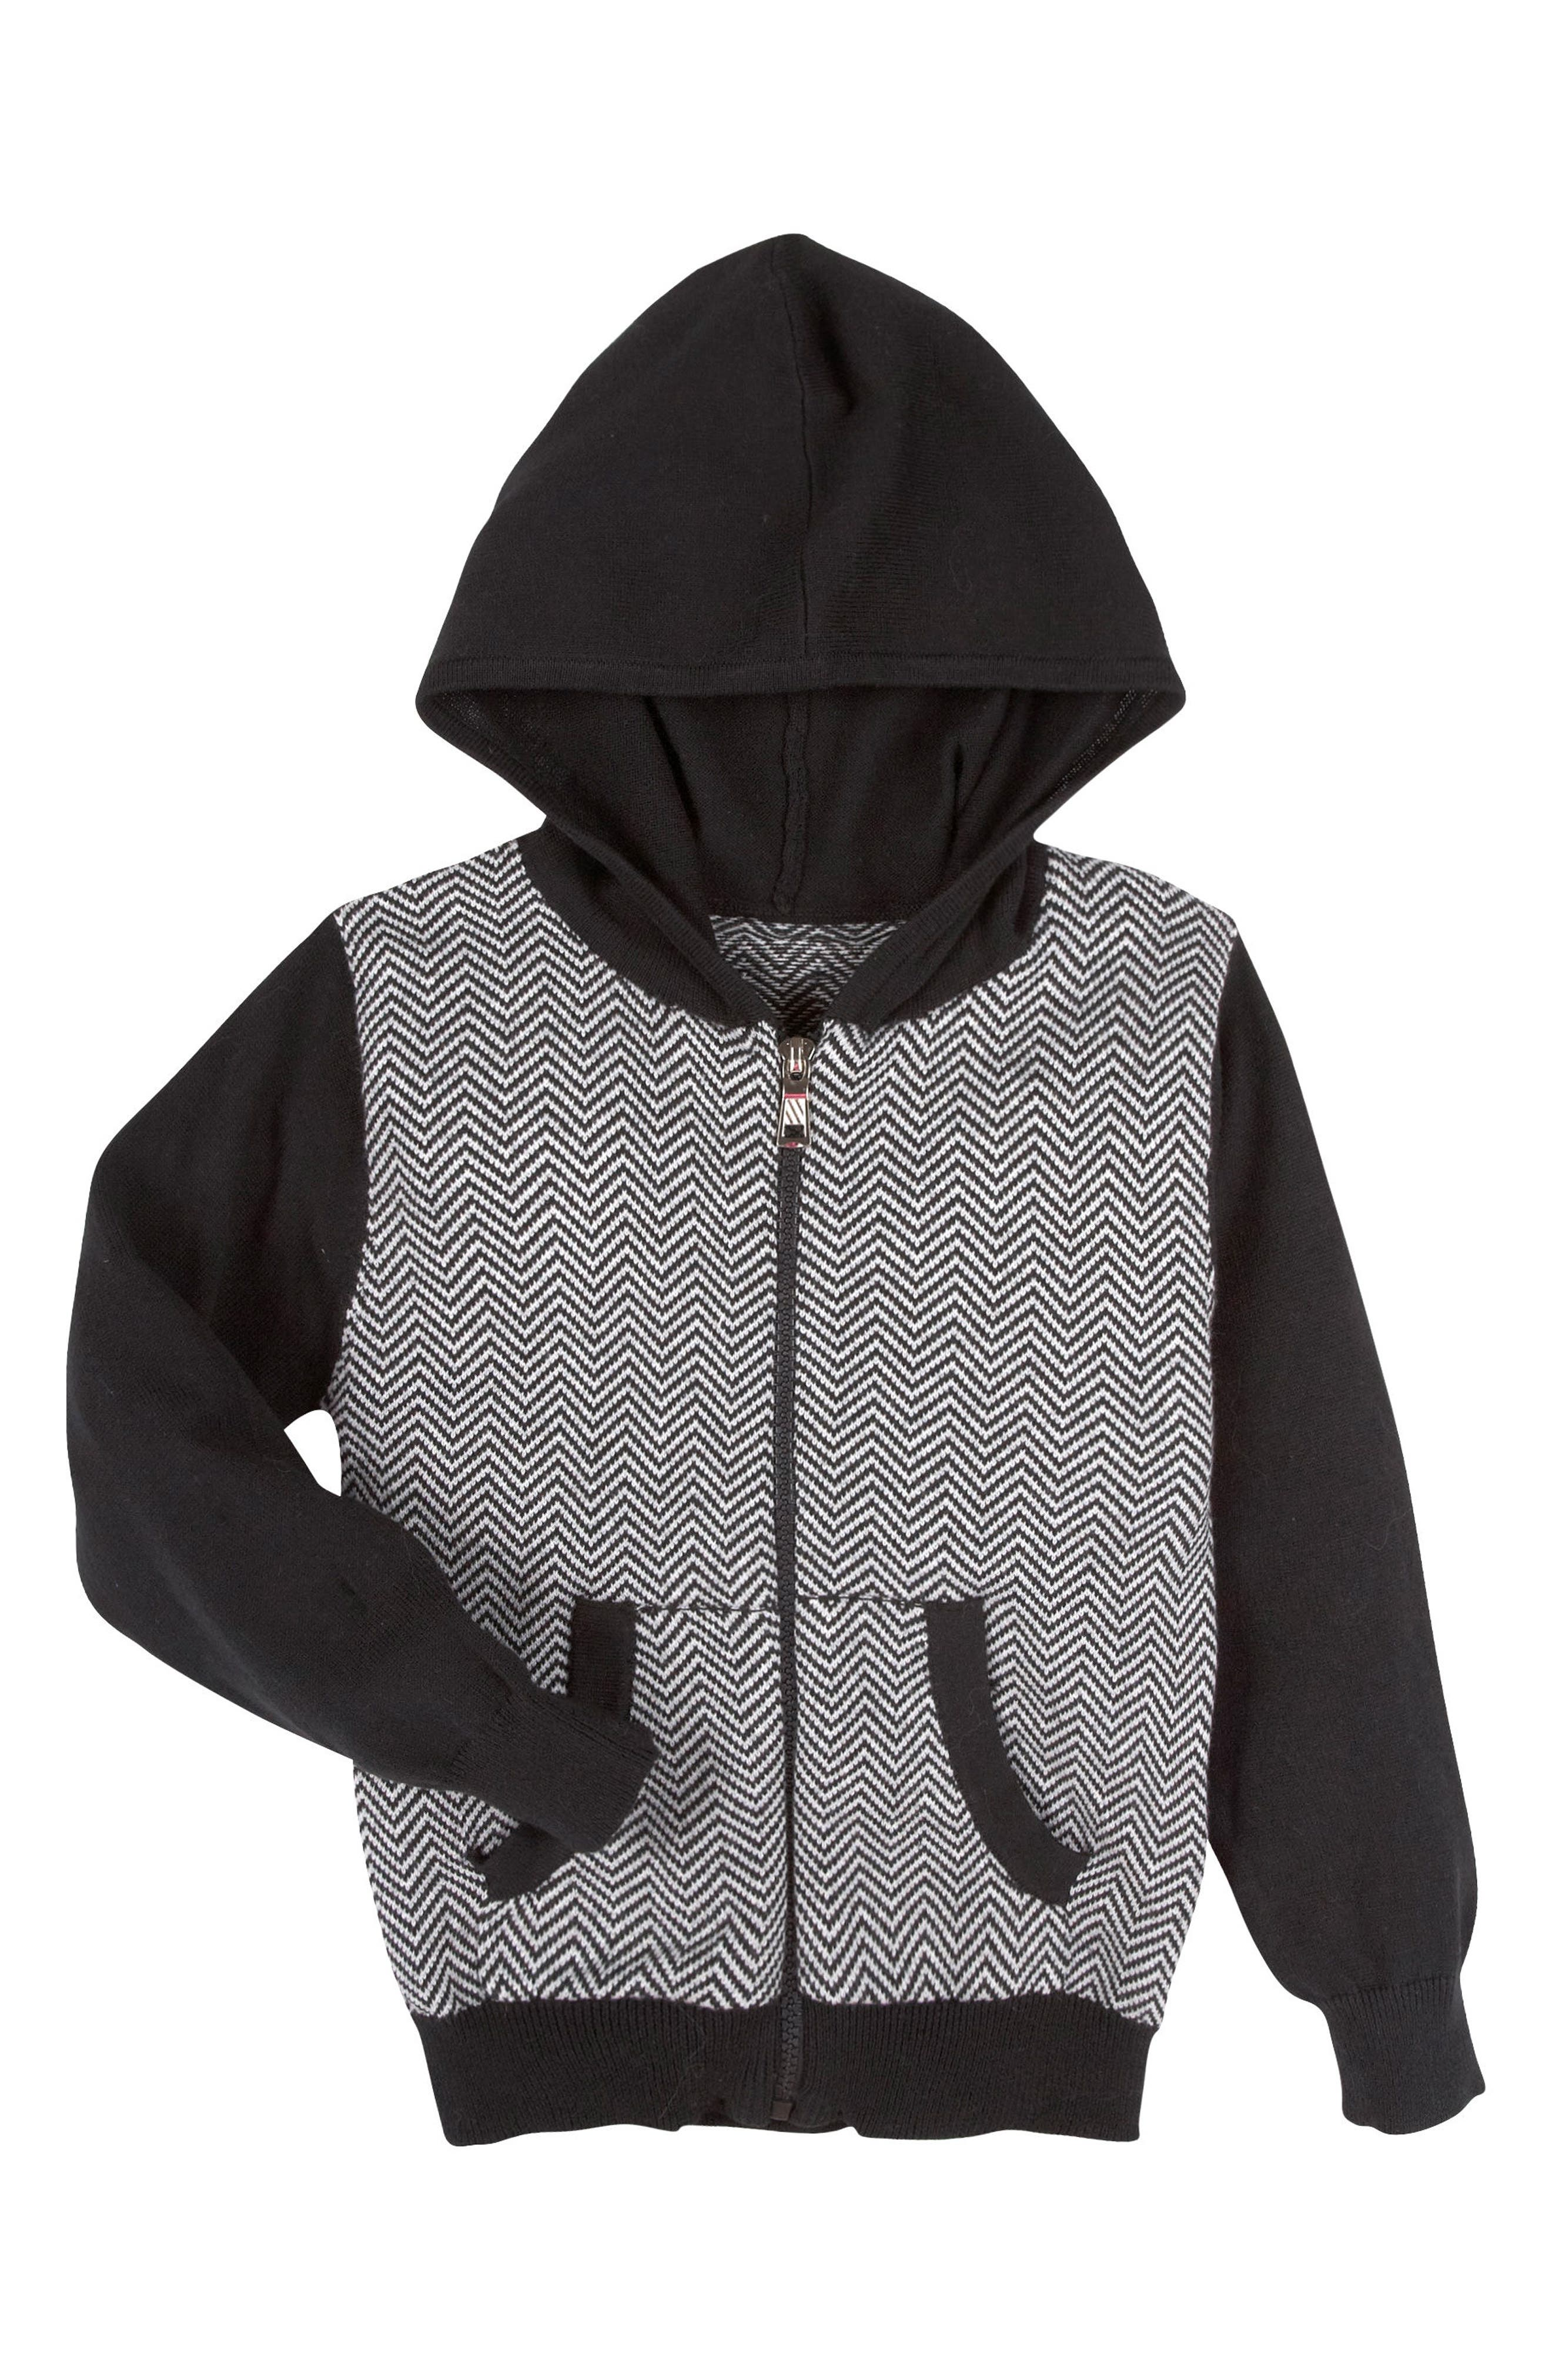 Main Image - Andy & Evan Herringbone Hoodie (Baby Boys)